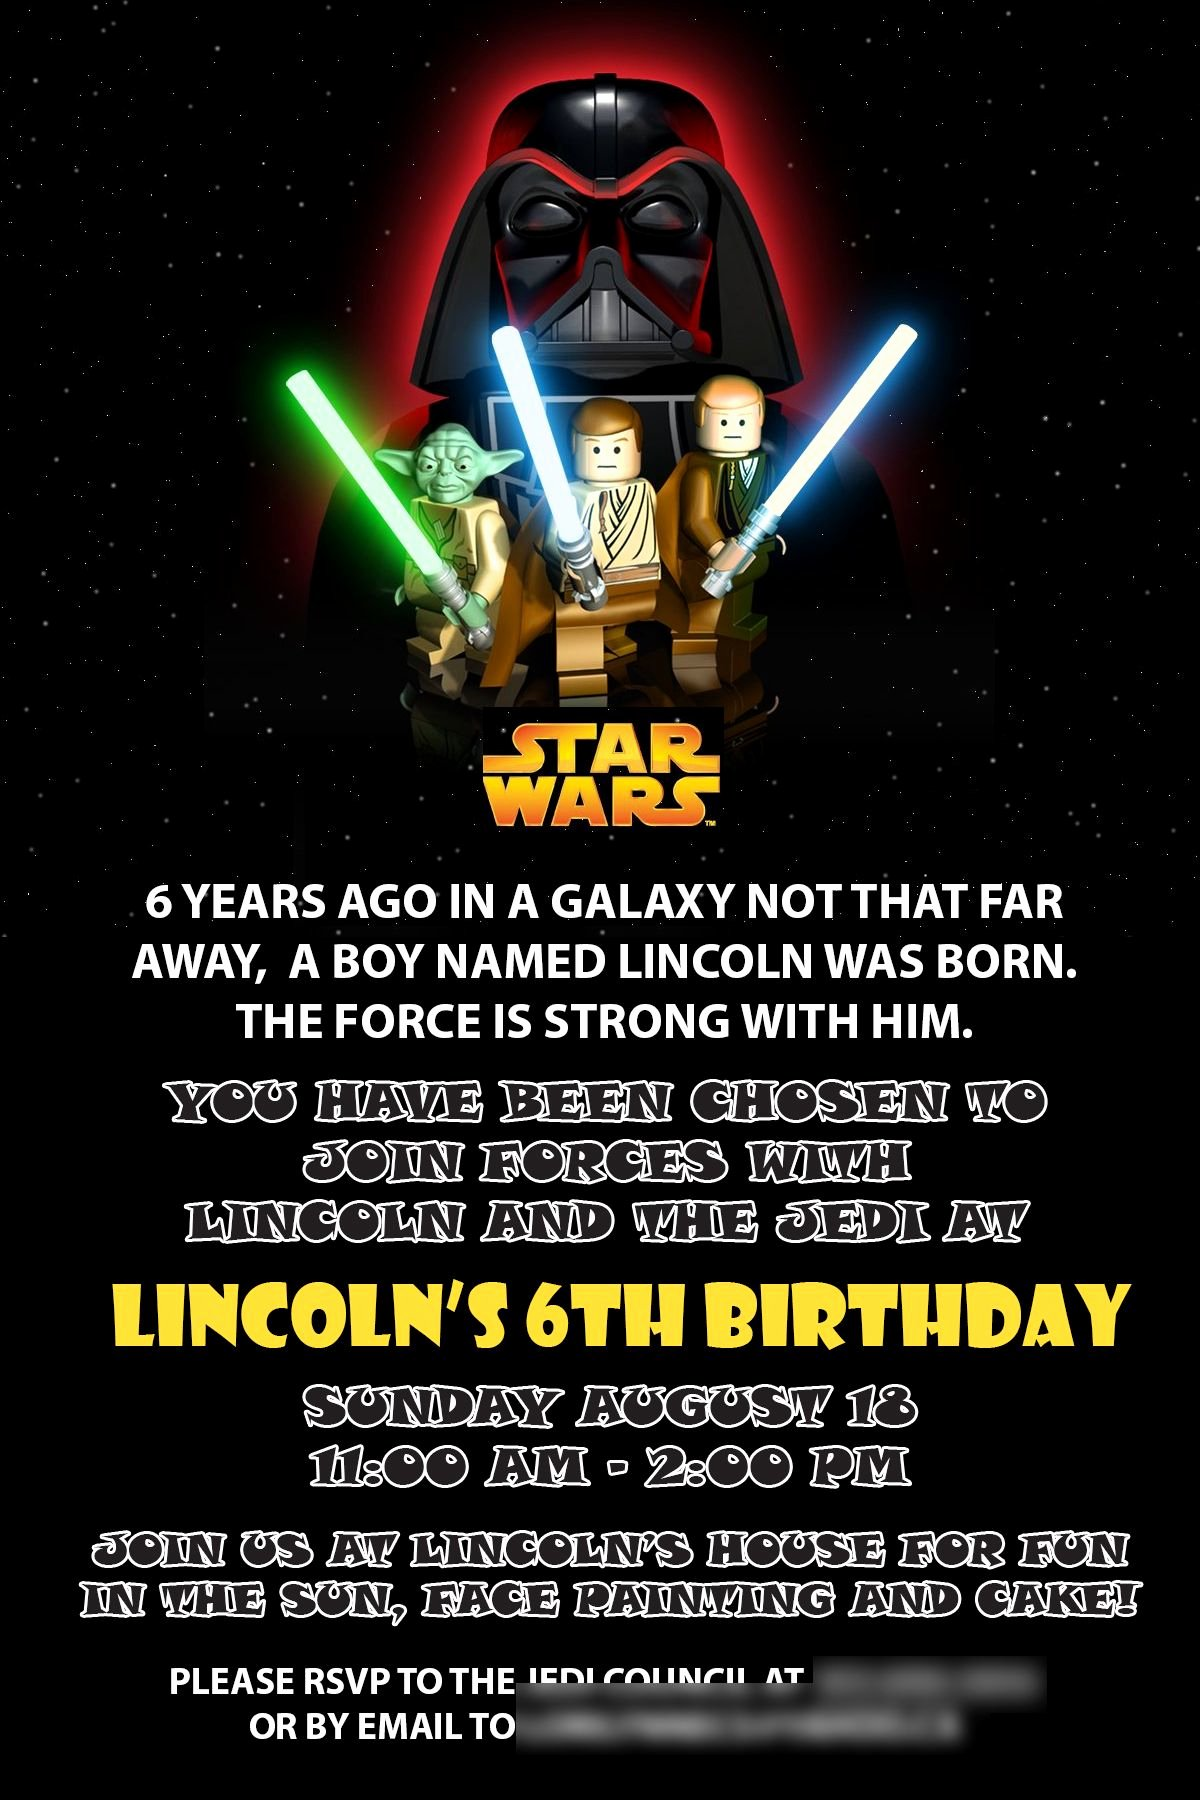 Star Wars Birthday Invitation Beautiful Starwars Birthday Invitation Star Wars